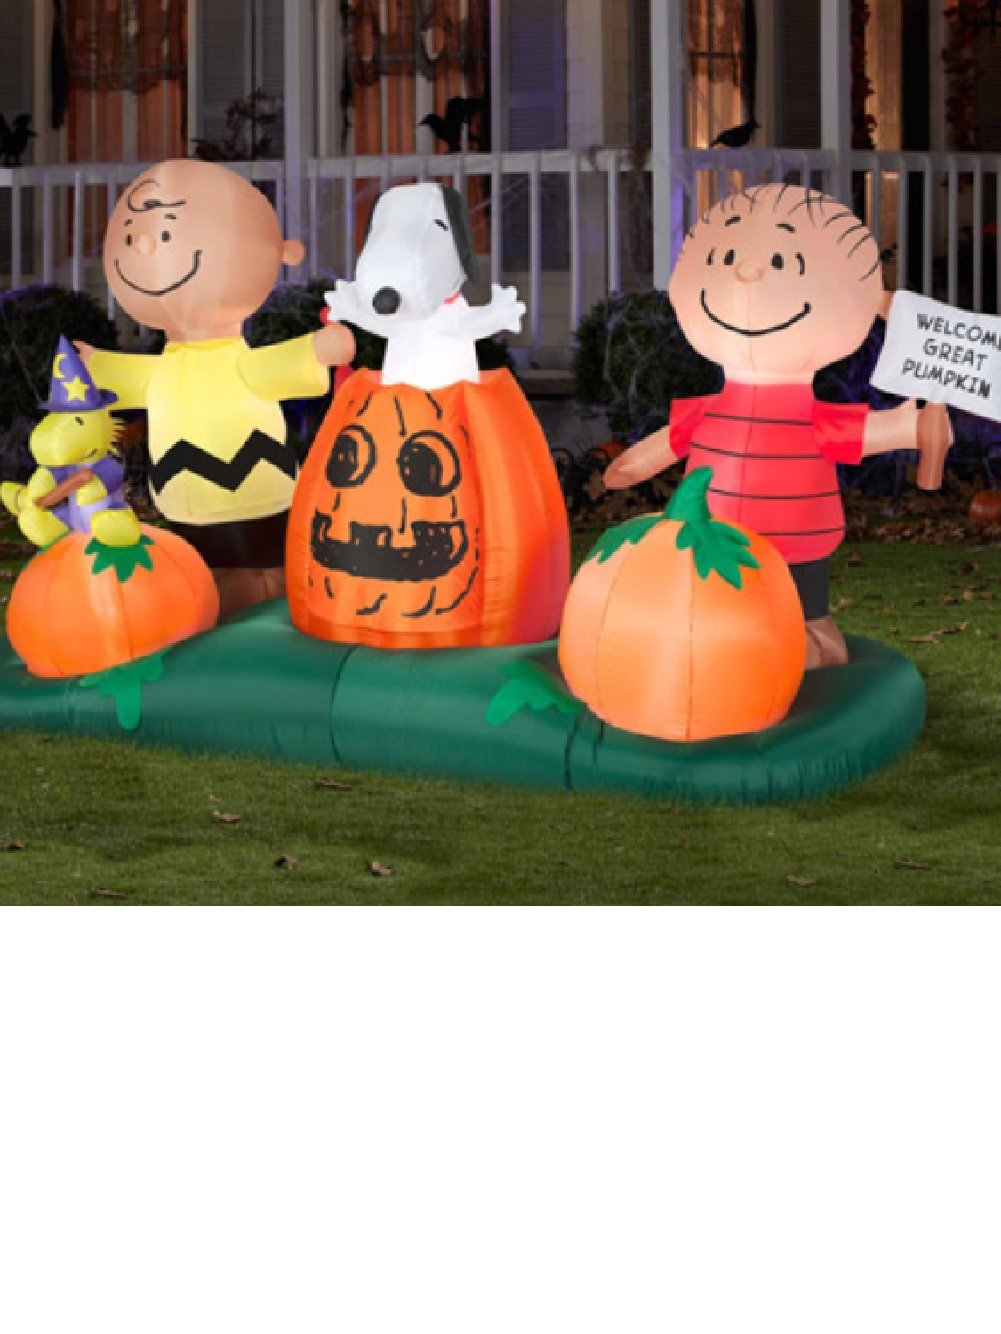 huge 5 ft airblown inflatables animated peanuts the great pumpkin patch halloween decoration 5 airblown inflatables animated peanuts pumpkin patch - Outdoor Inflatable Halloween Decorations